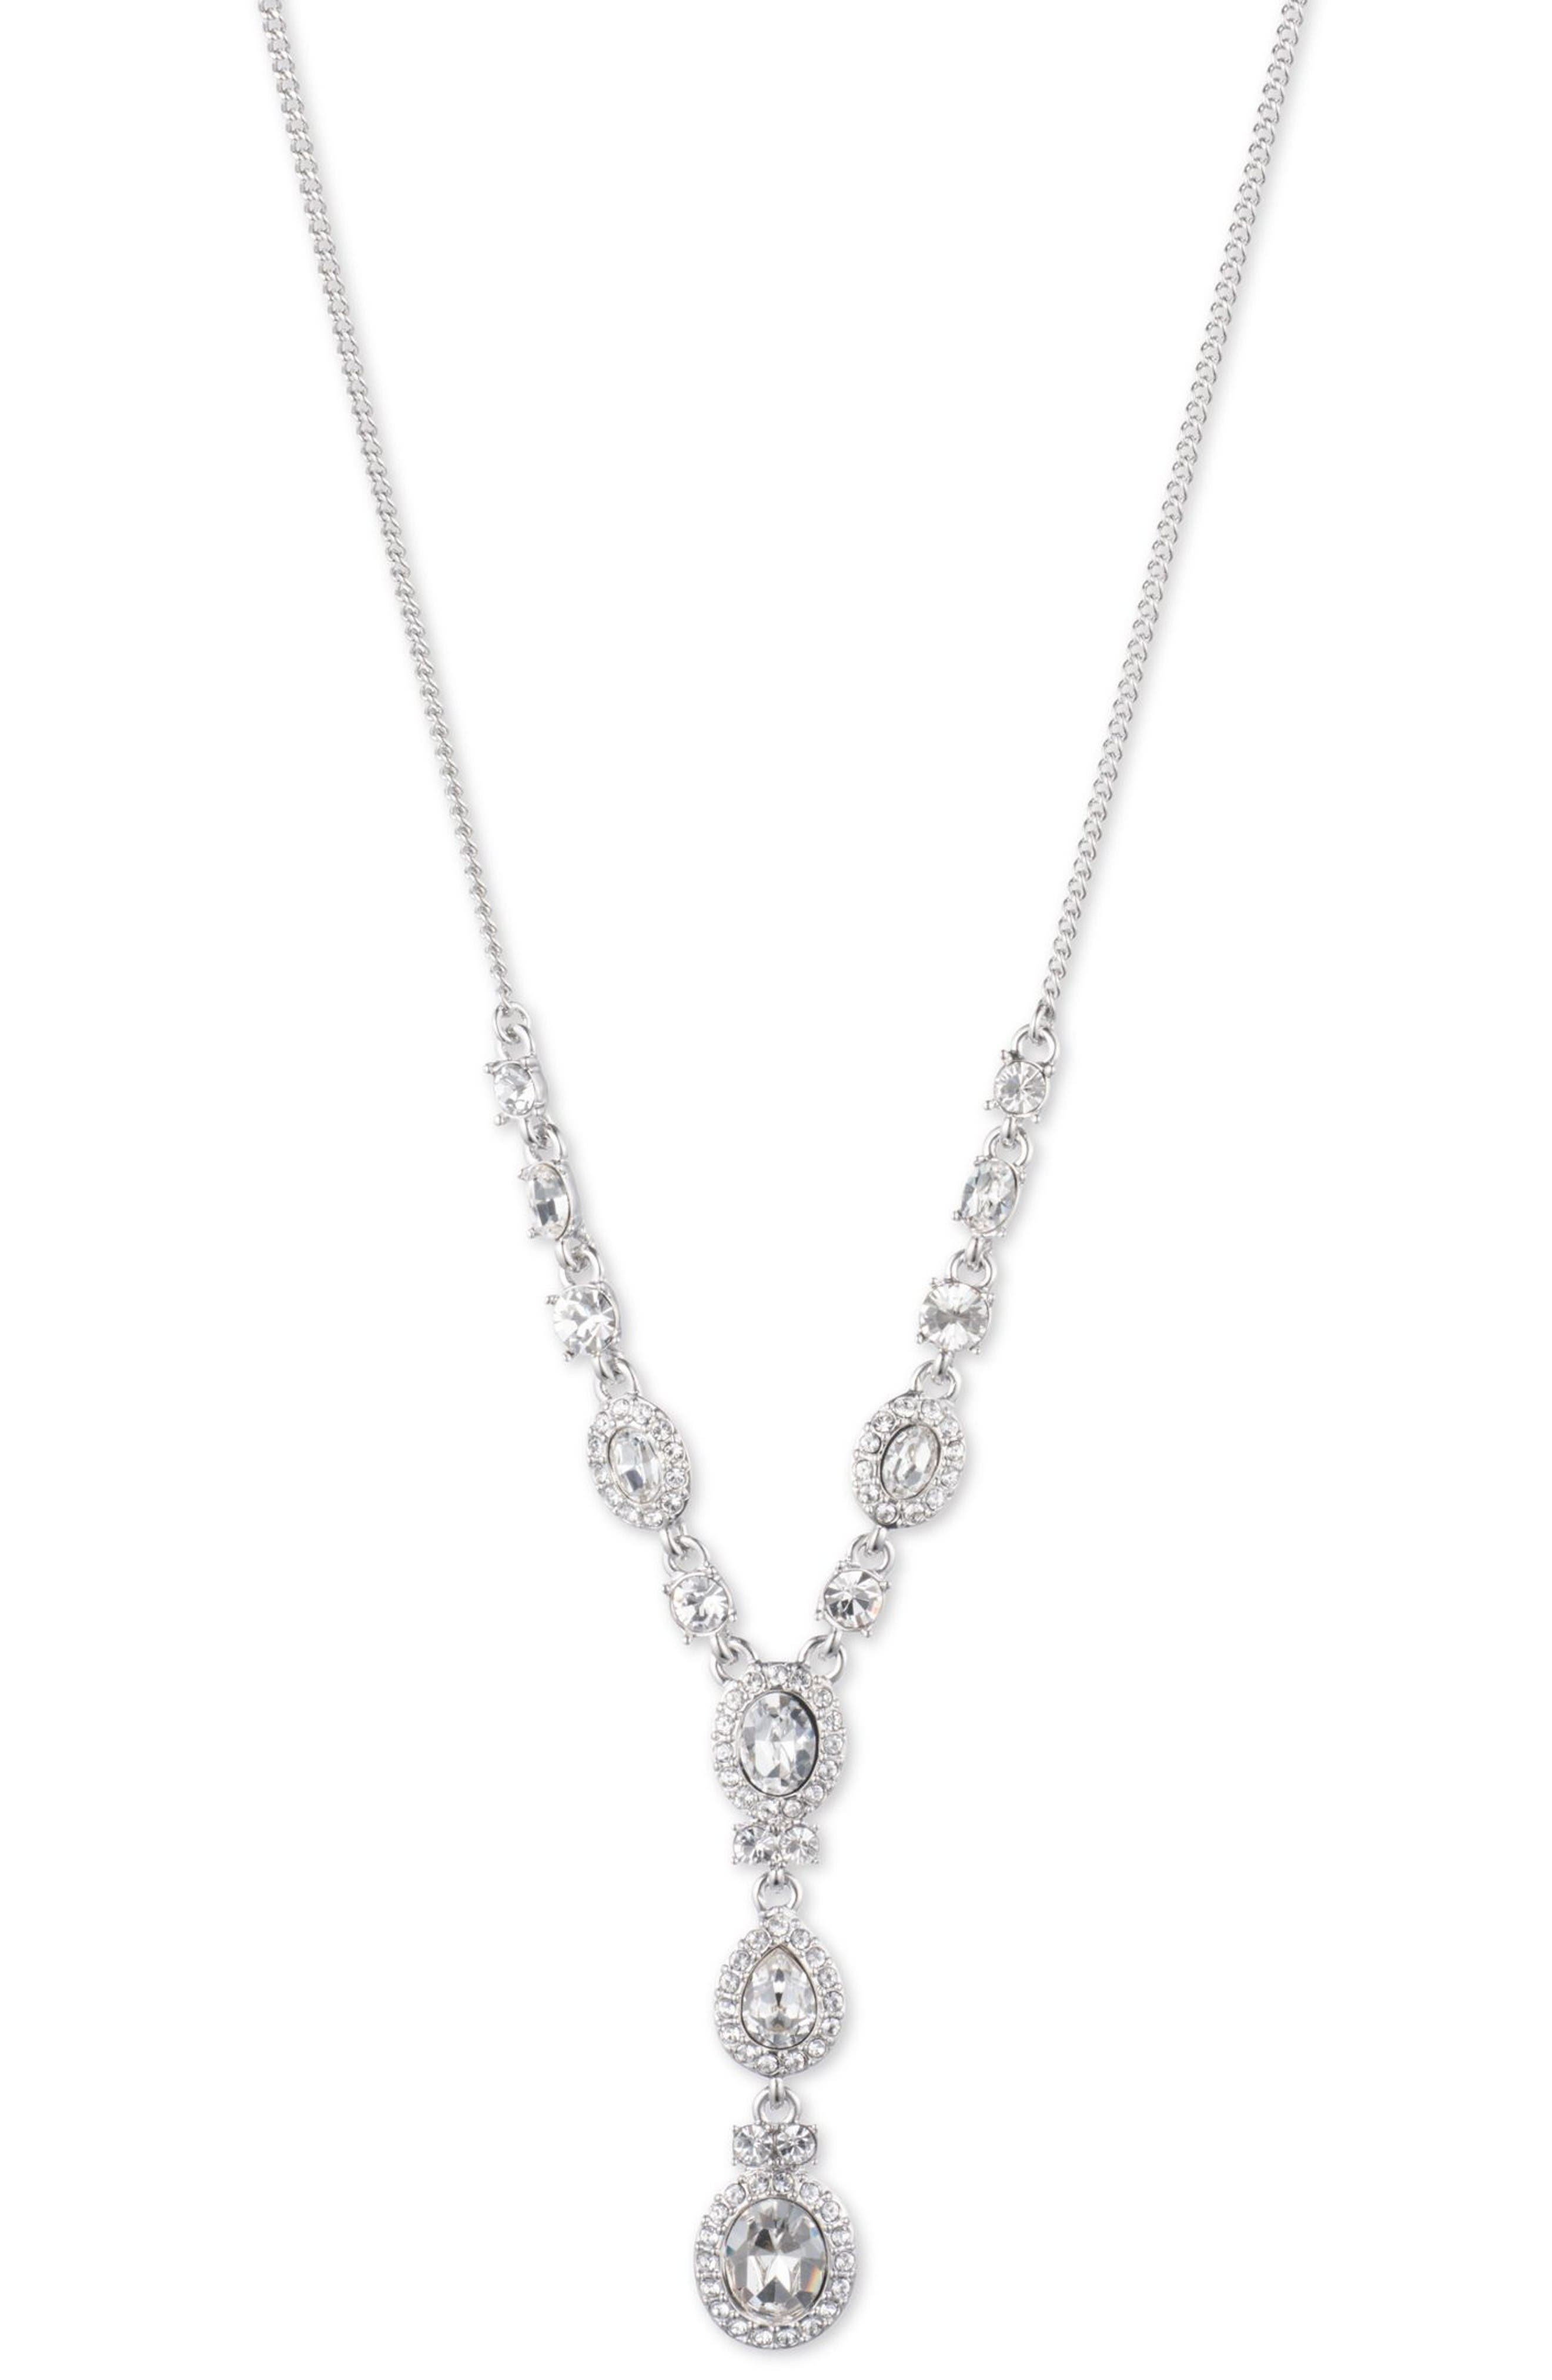 Main Image - Givenchy Crystal Y-Necklace